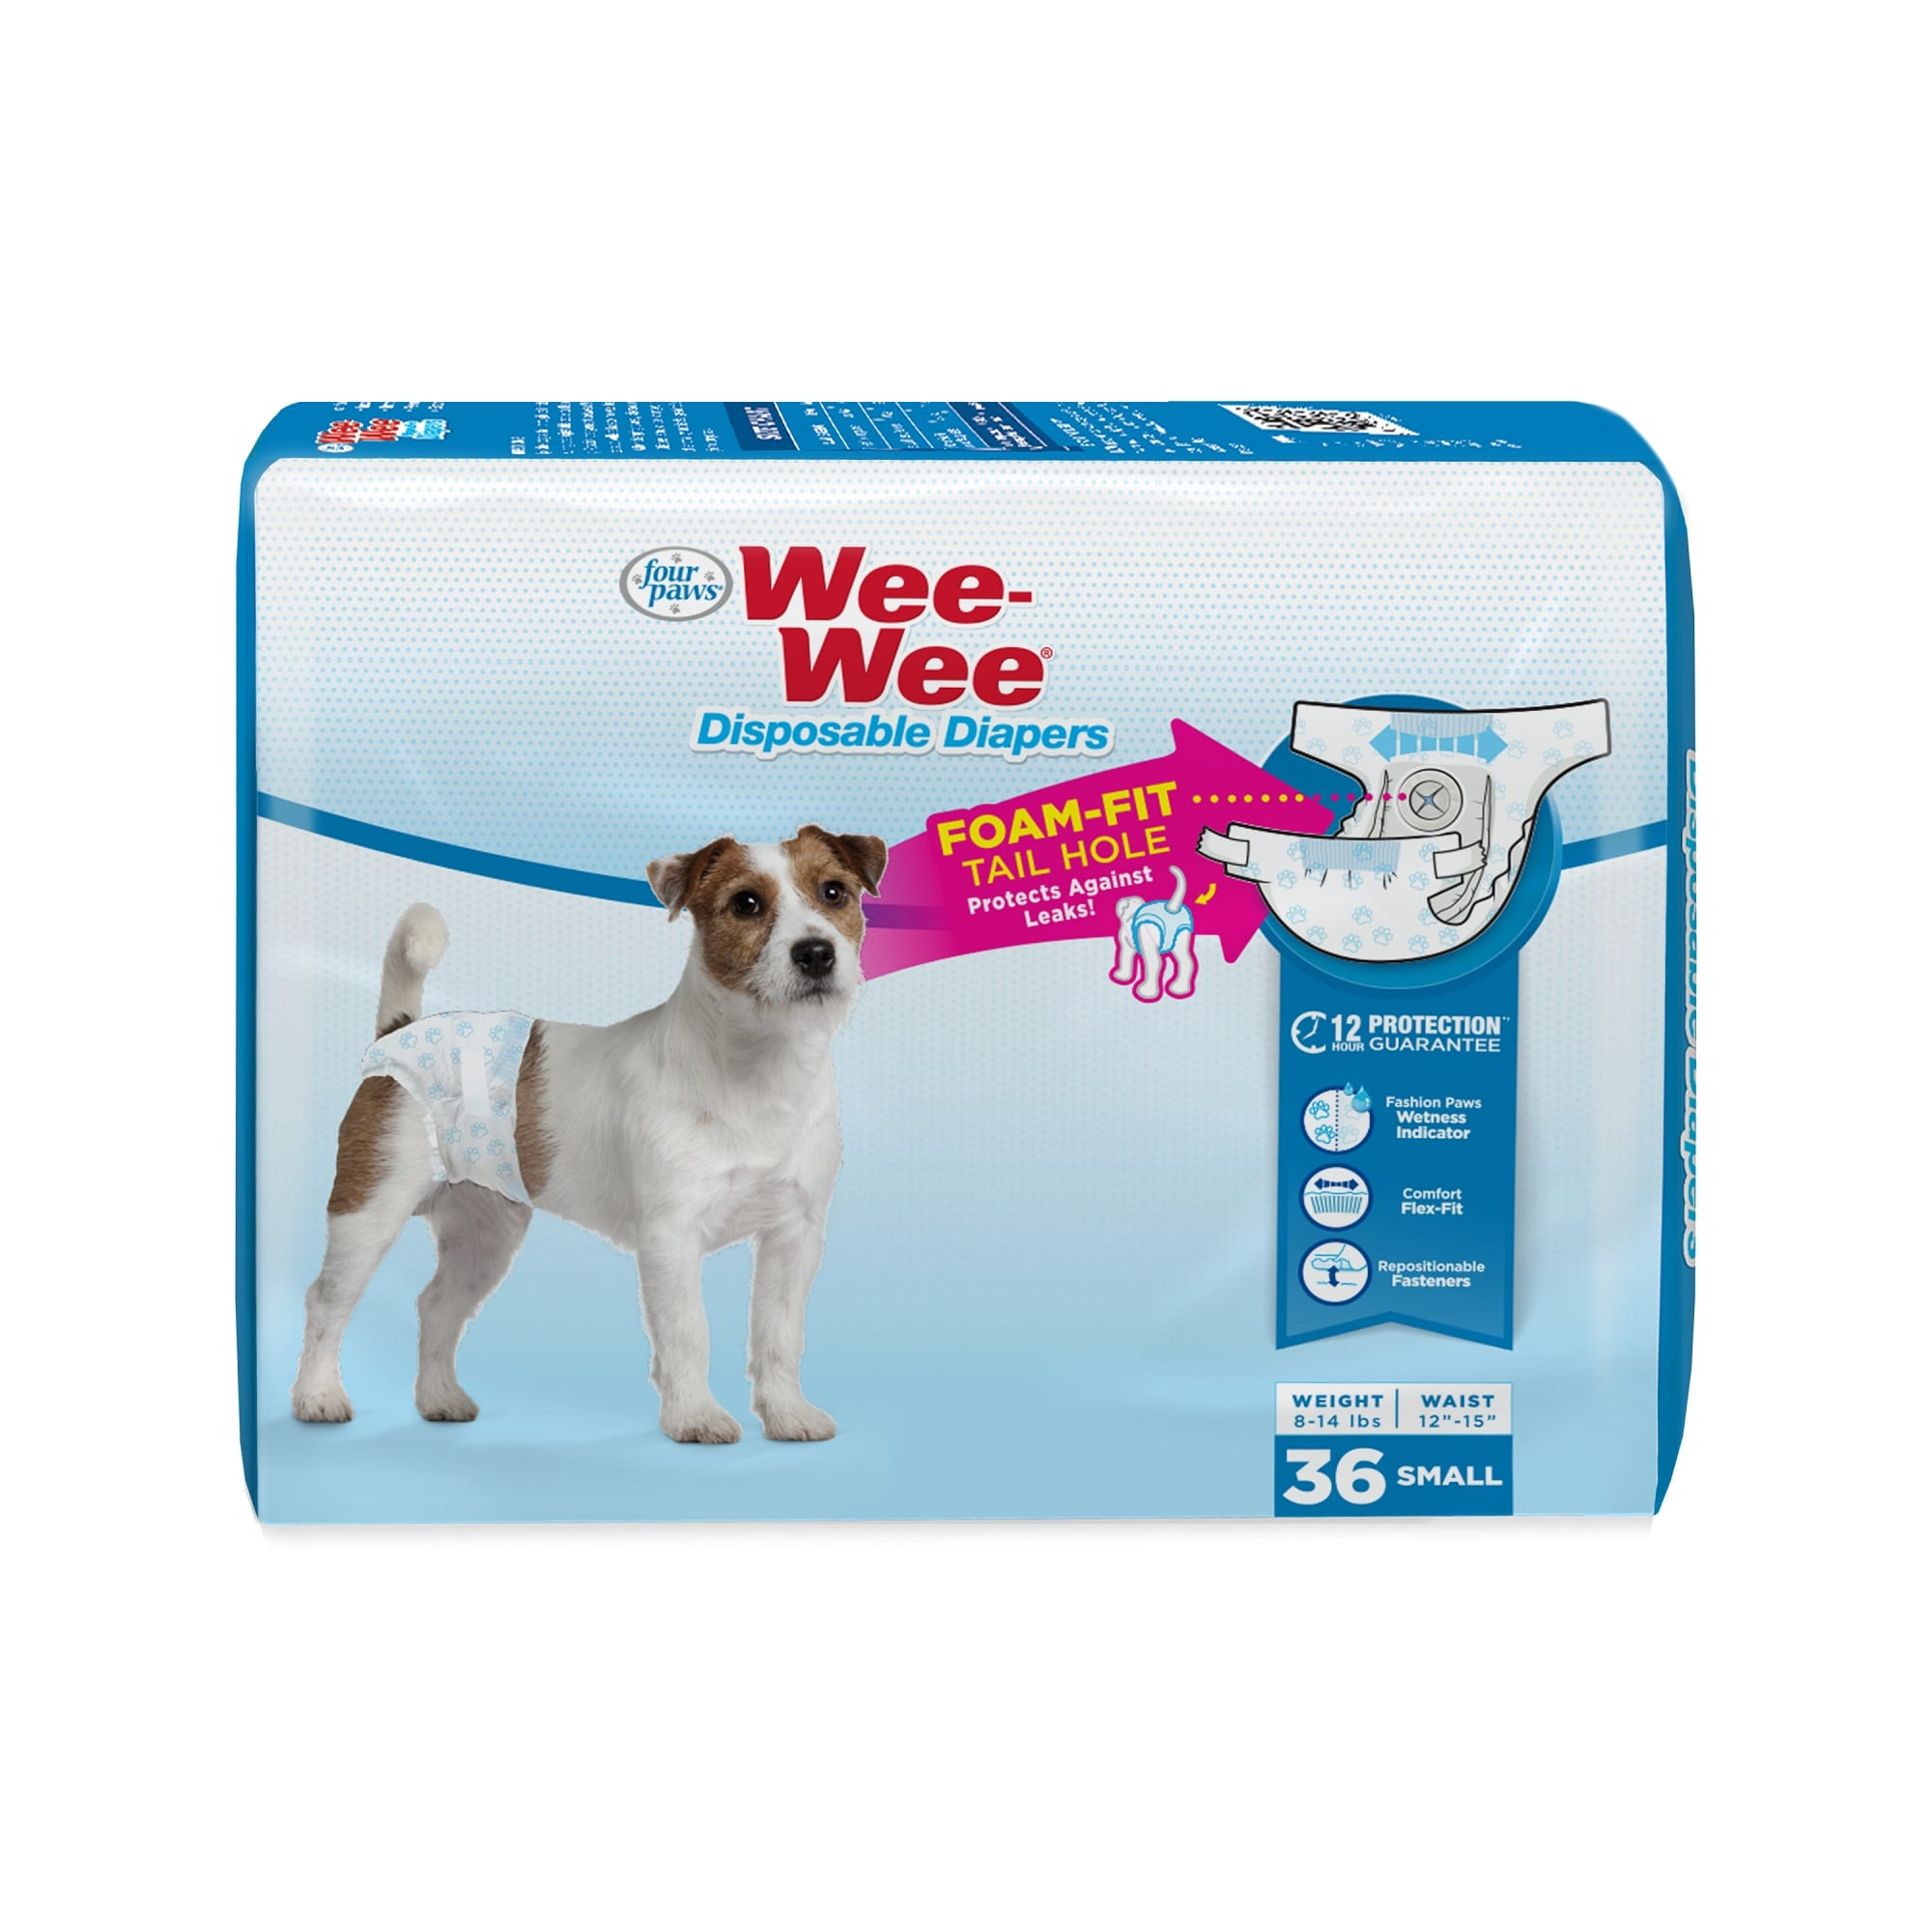 Wee-Wee Disposable Diapers for Dogs, Small, Count of 36